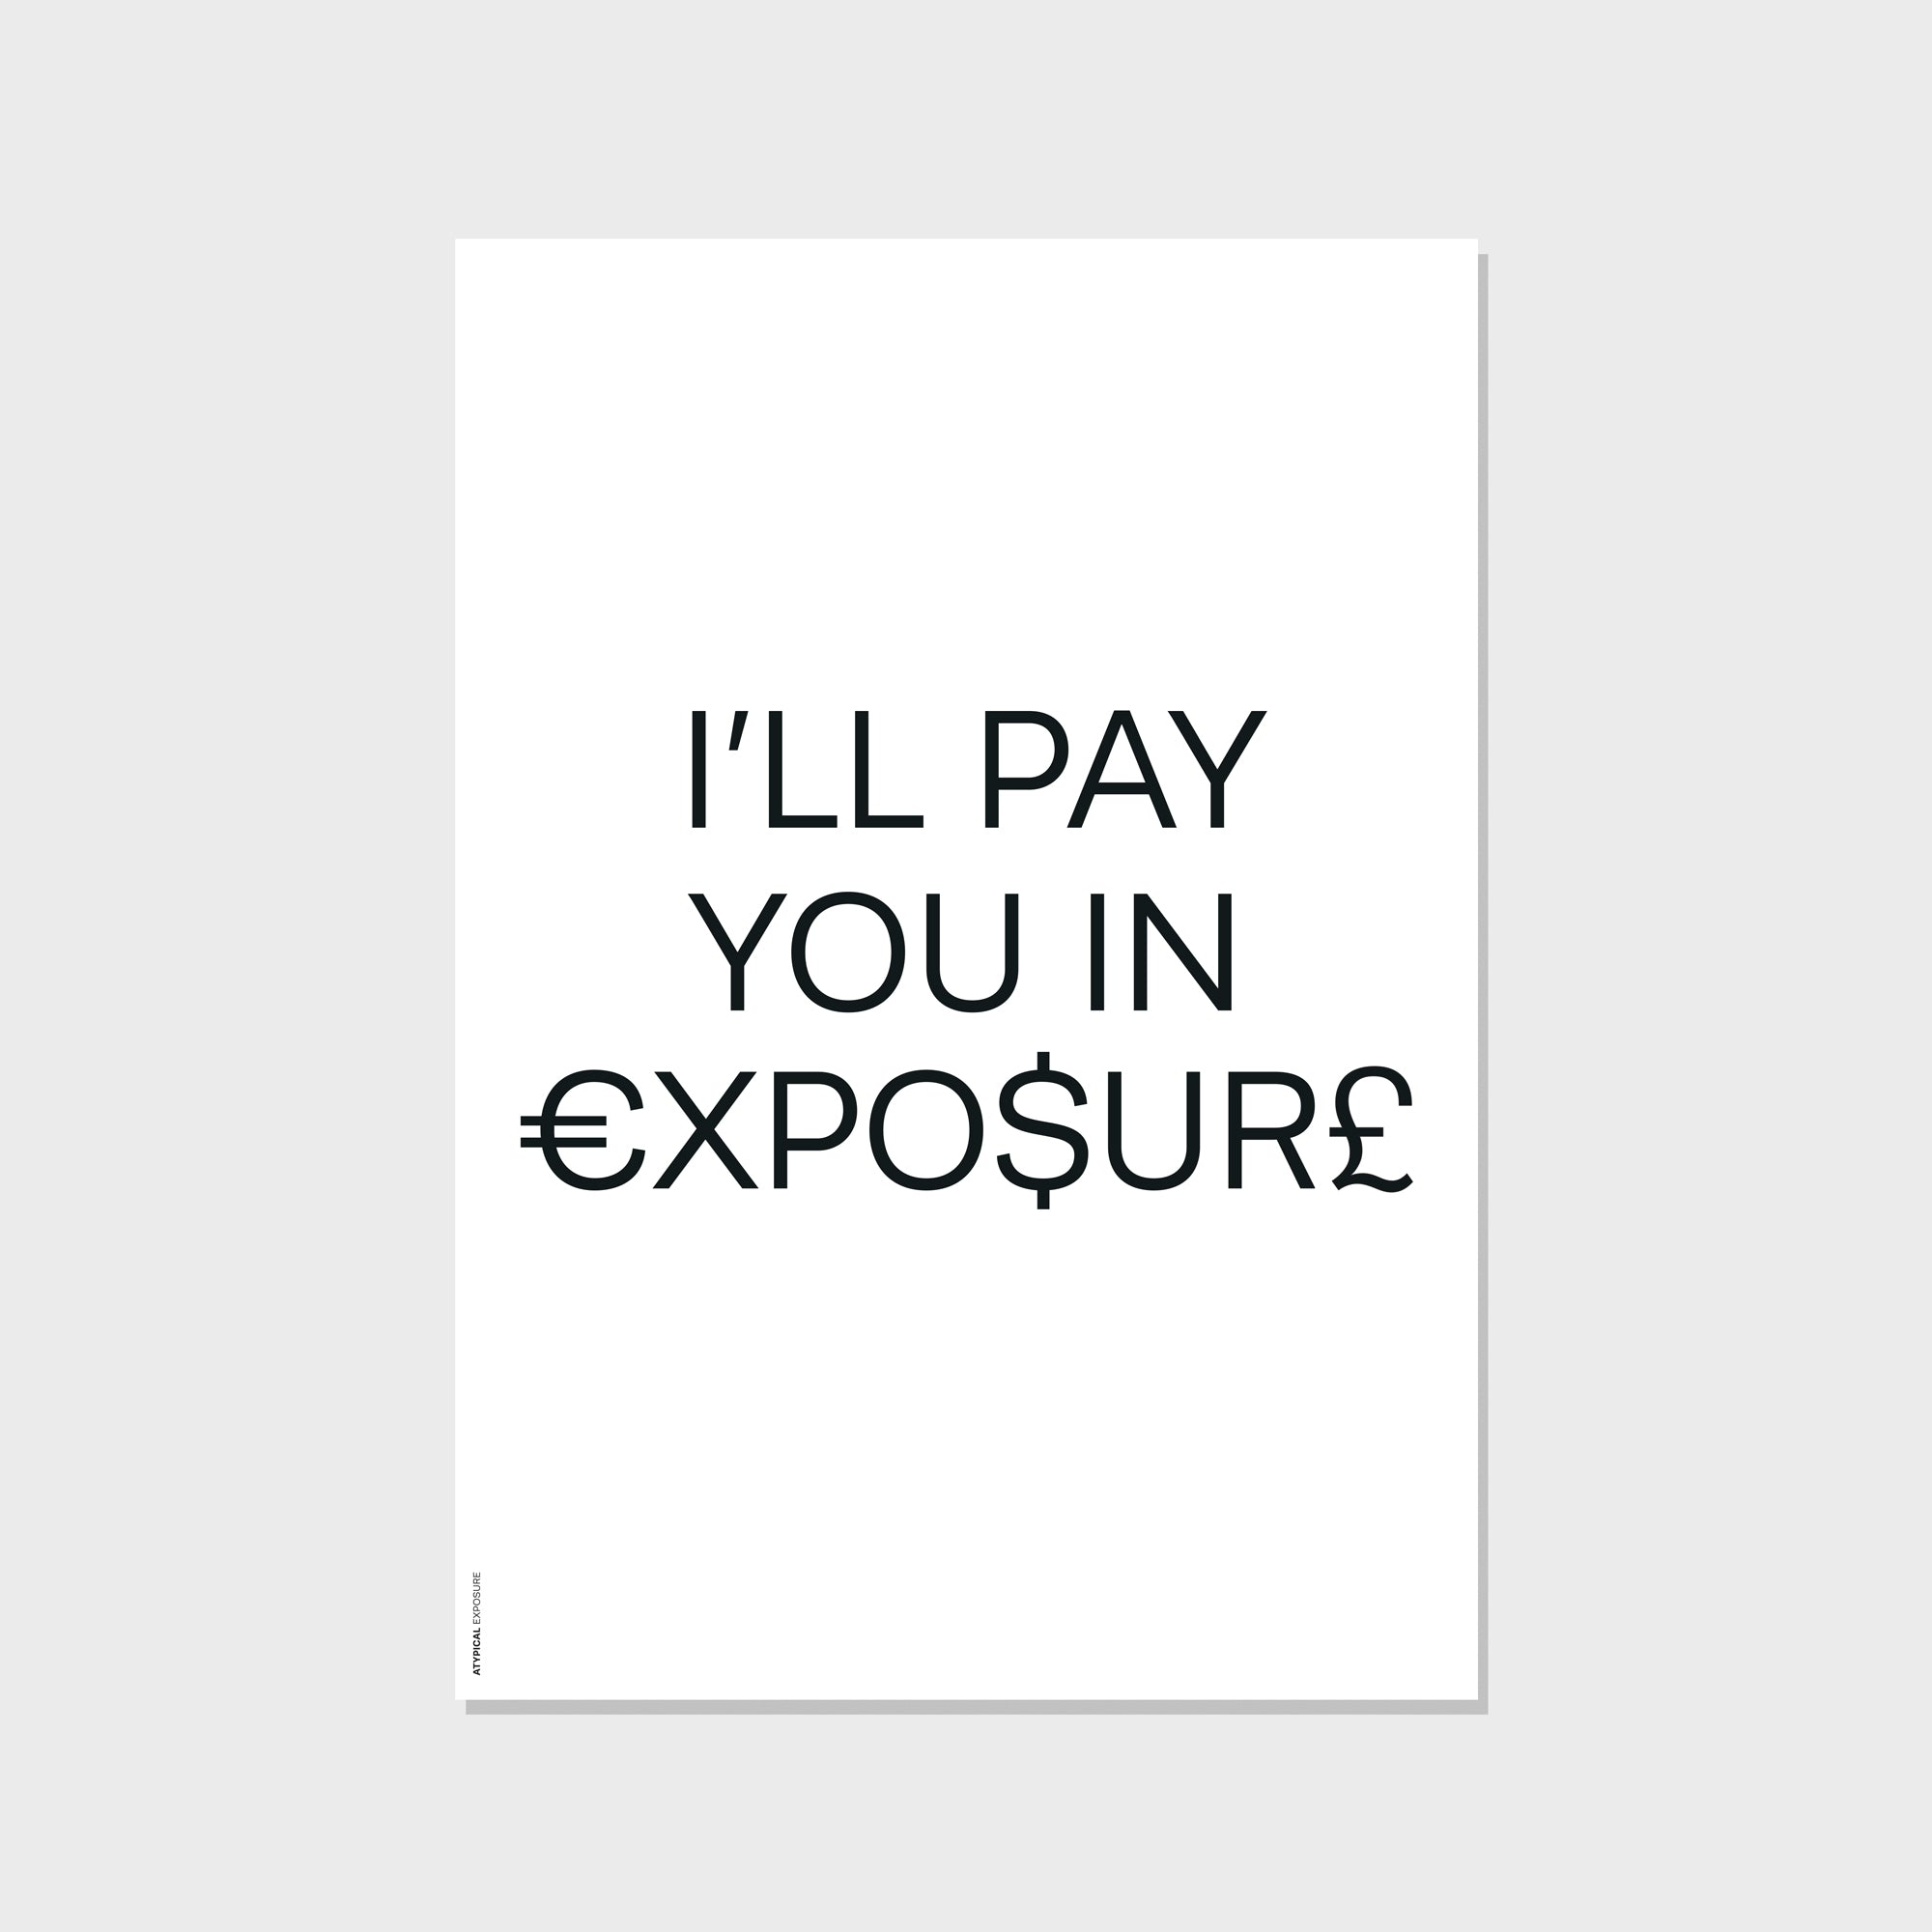 I'LL PAY YOU IN EXPOSURE